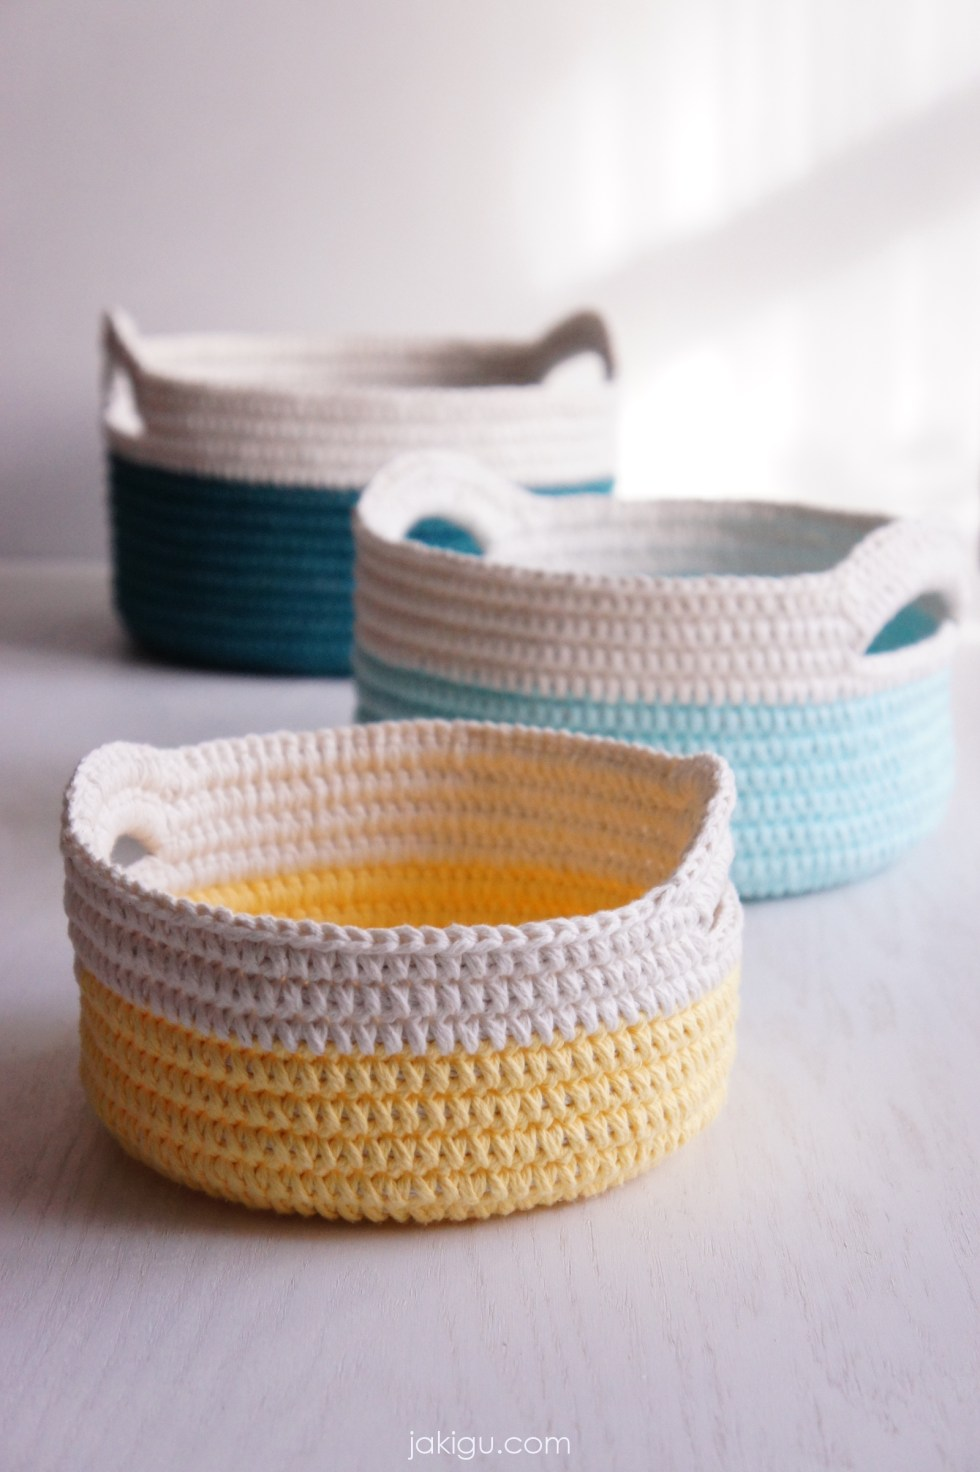 Sturdy crochet baskets with handles - a nesting set